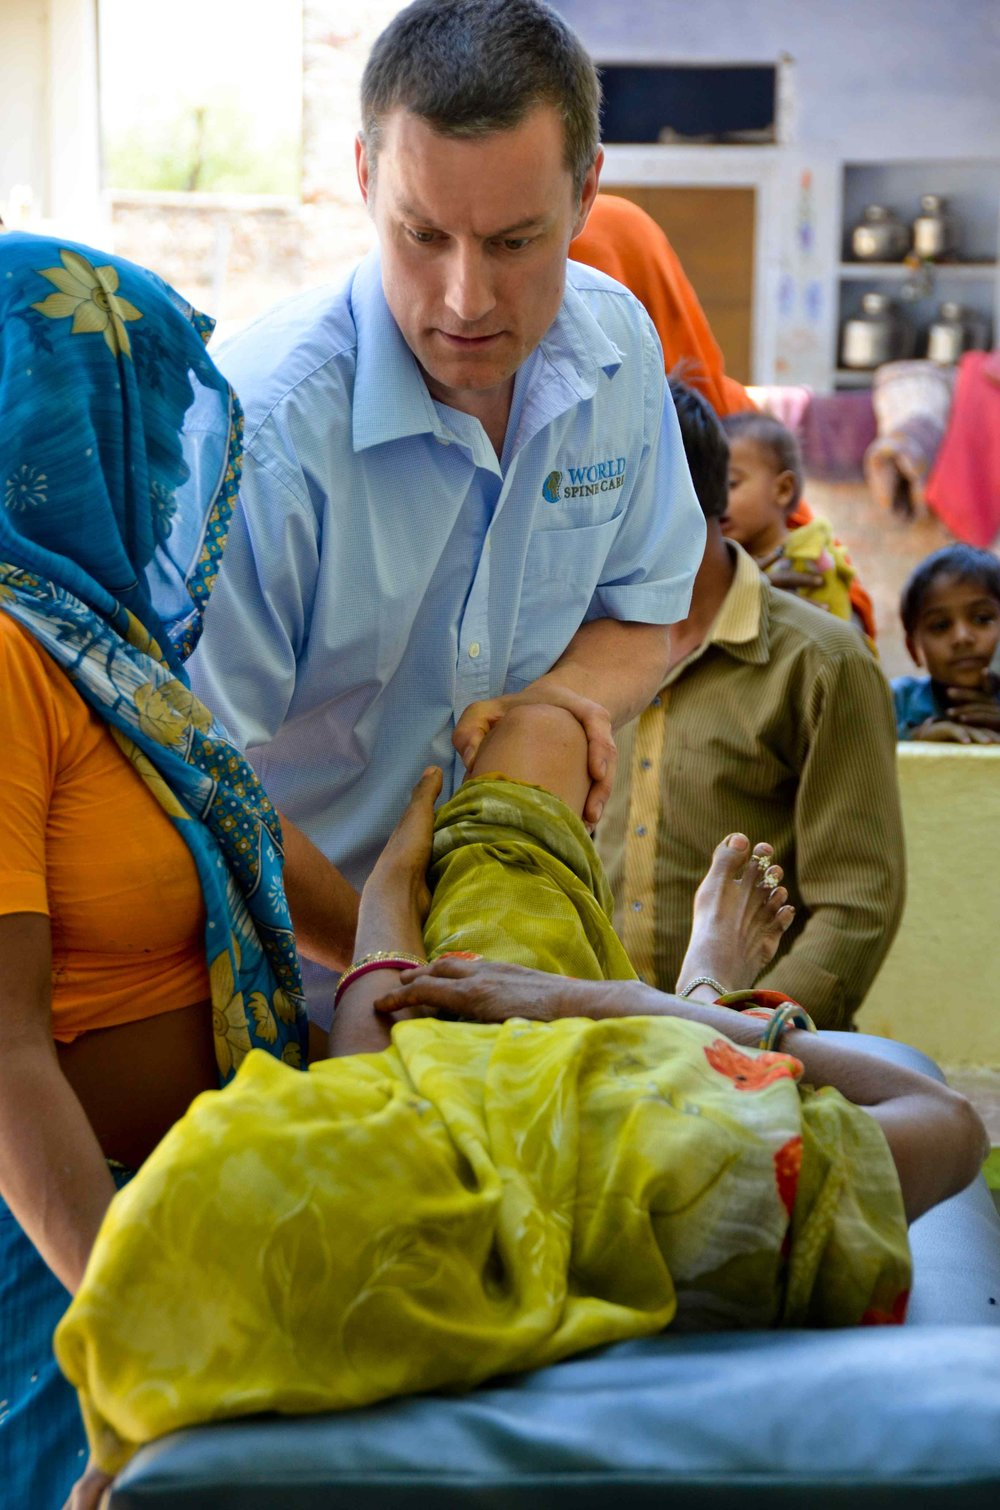 Dr. Geoff Outerbridge, World Spine Care Director of Clinics, treating a patient in India